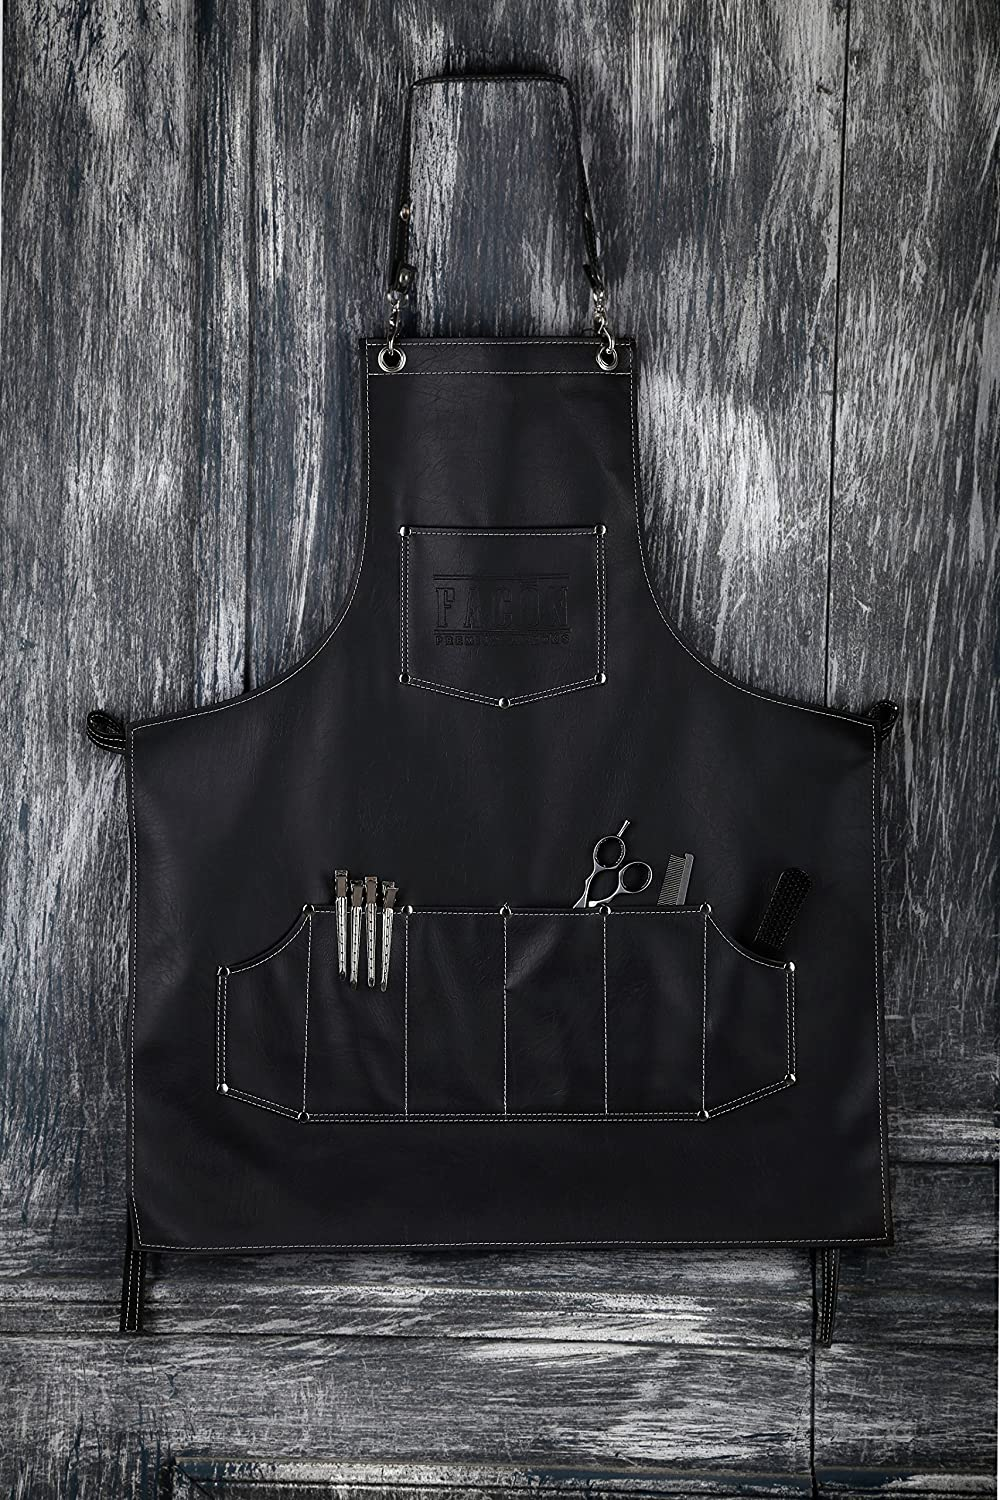 Facó n Beauty Facó n Professional Leather Hair Cutting Hairdressing Barber Apron Cape for Salon Hairstylist - Multi-use Adjustable with 8 pockets - Heavy Duty Premium Quality - Limited Edition - 30' x 24' (Black) EXPSFD001444